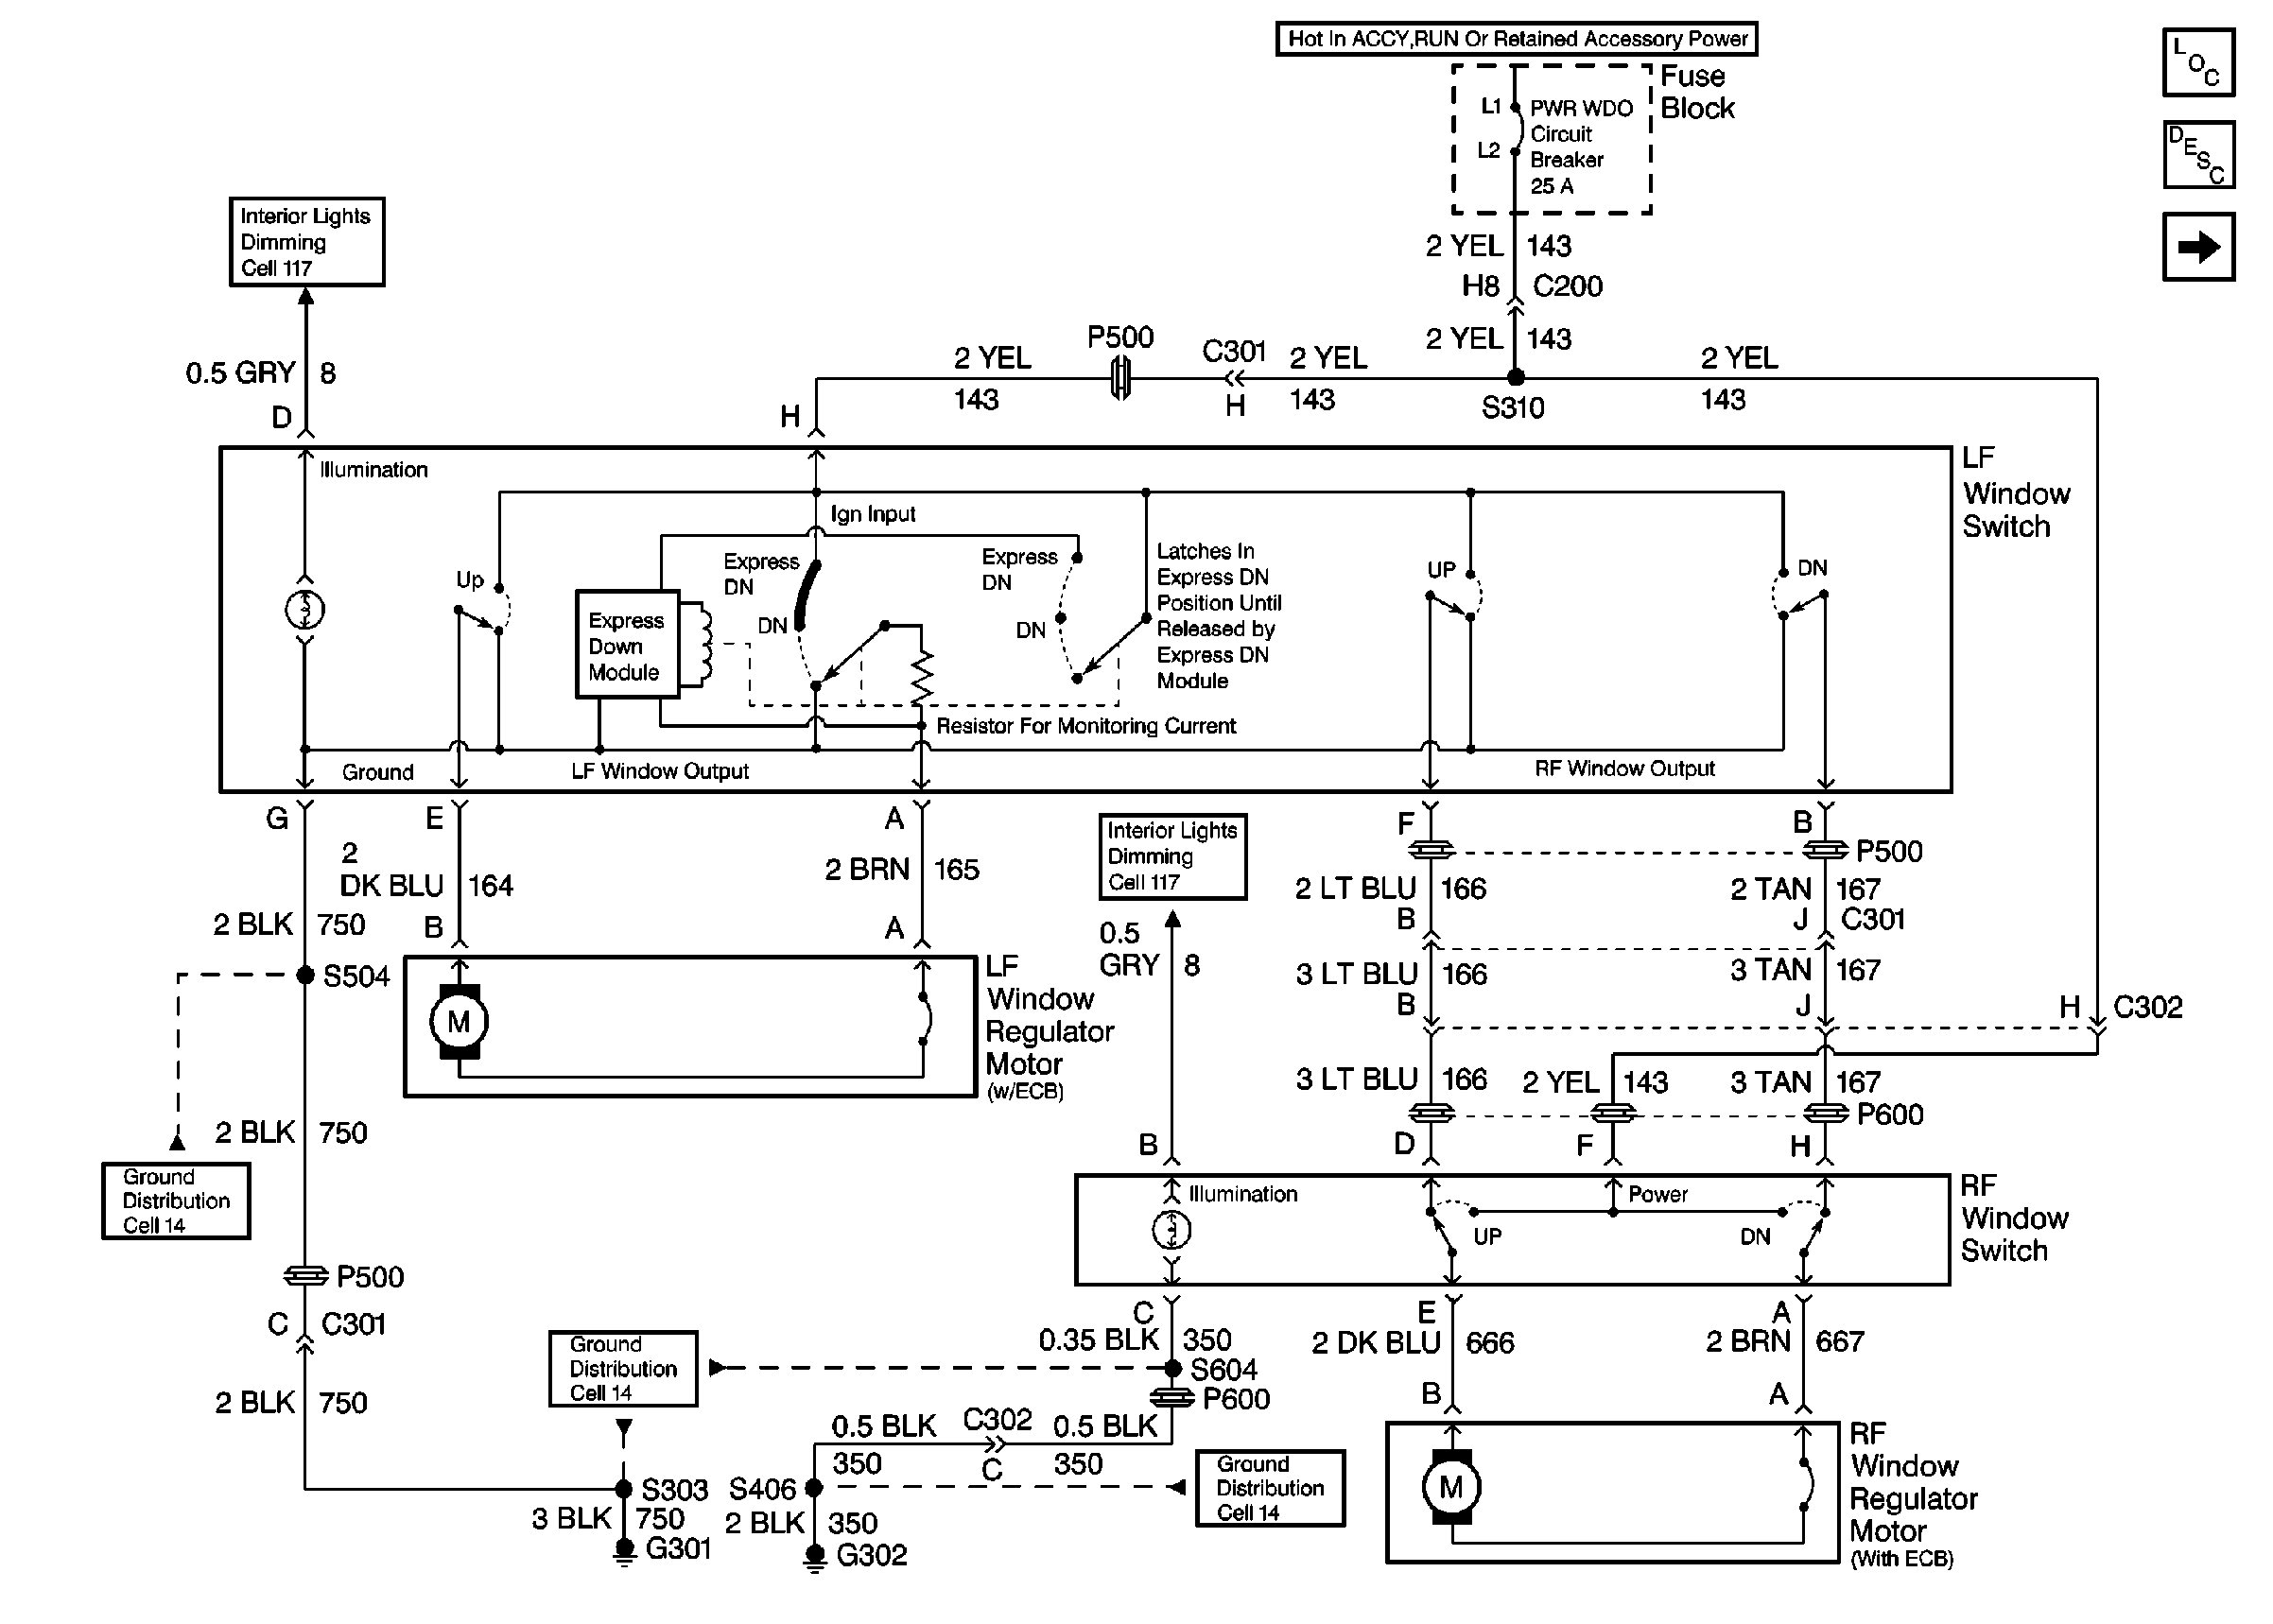 Pontiac Grand Prix 3800 V6 Engine Diagram Wiring Library. Pontiac Grand Prix 3800 V6 Engine Diagram. Pontiac. 2002 Pontiac Grand Prix Se 3 1 Engine Diagram At Scoala.co